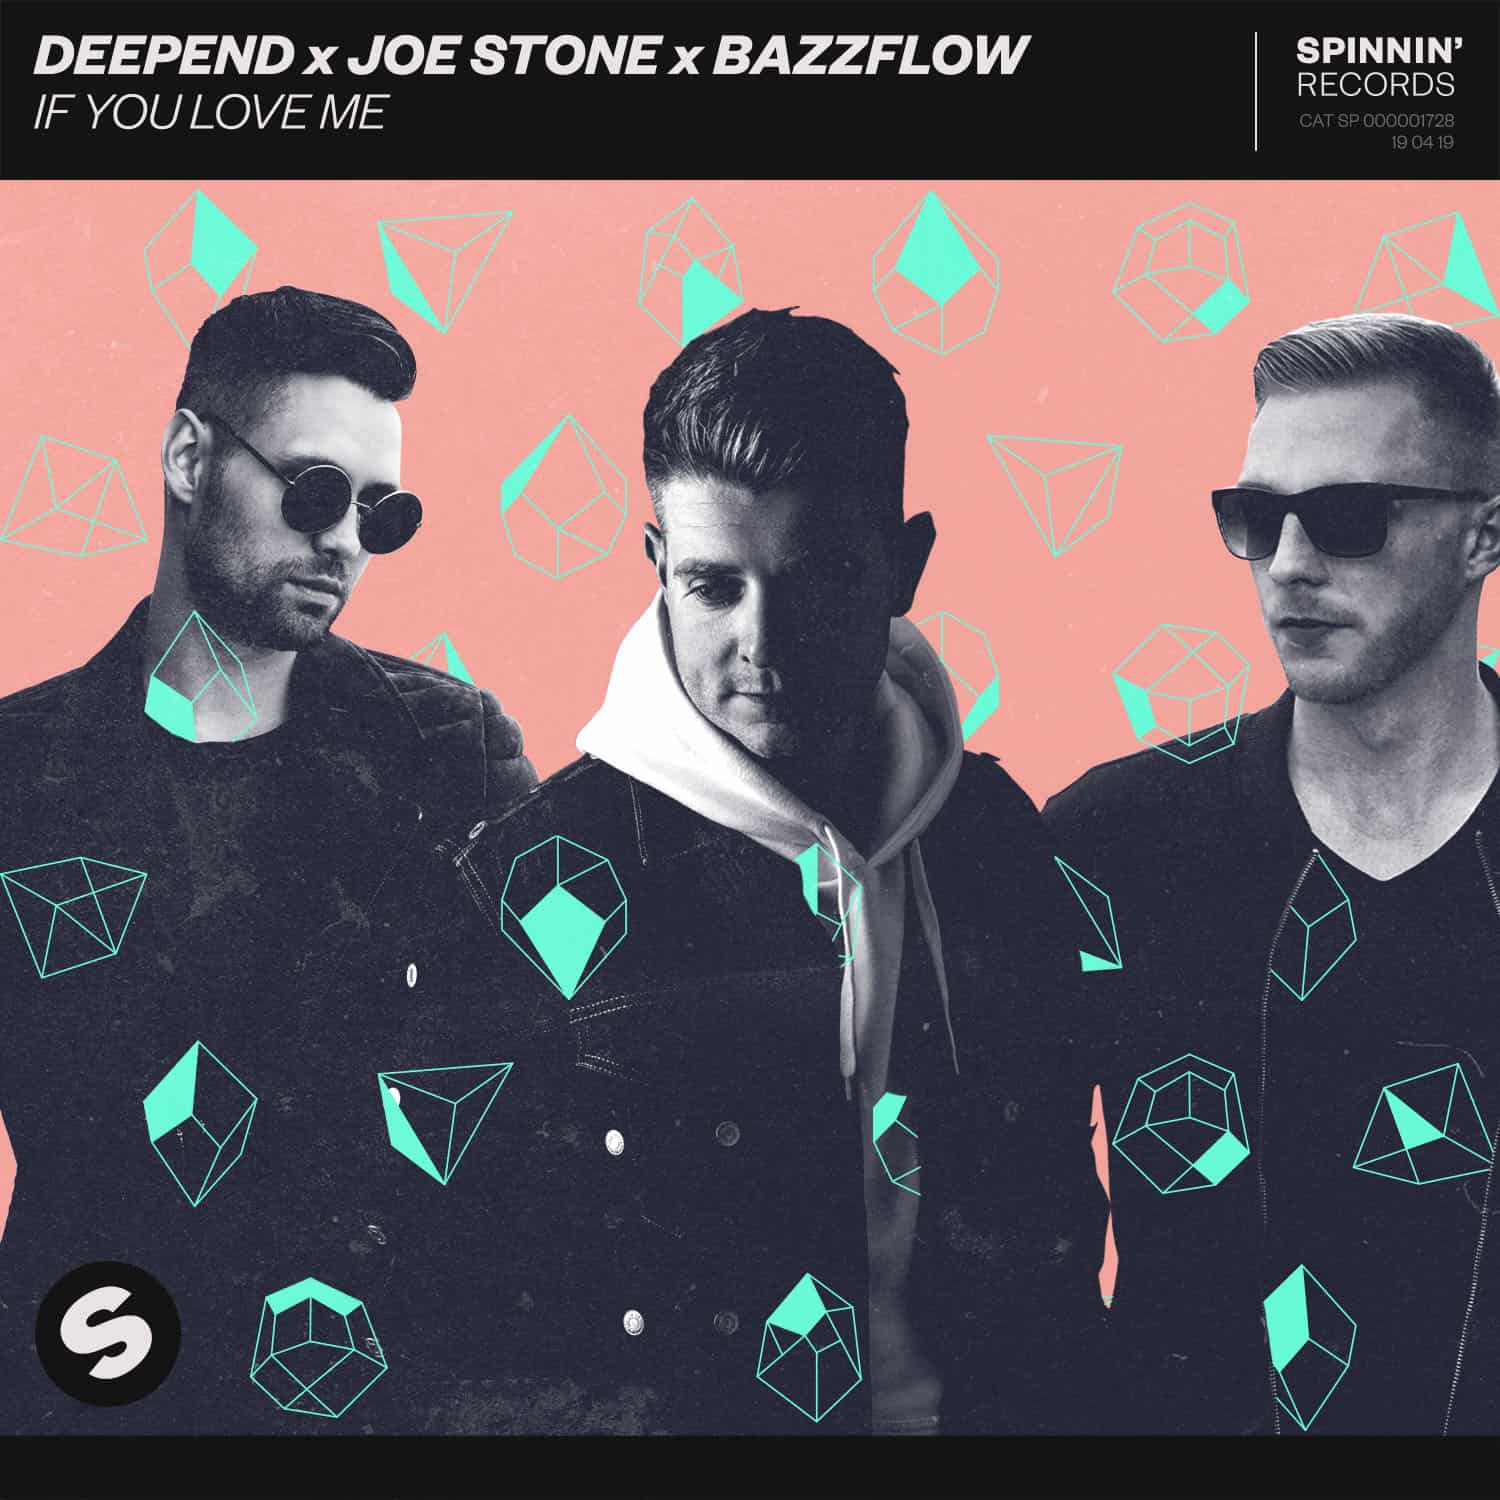 Deepend x Joe Stone x Bazzflow present 'If You Love Me'